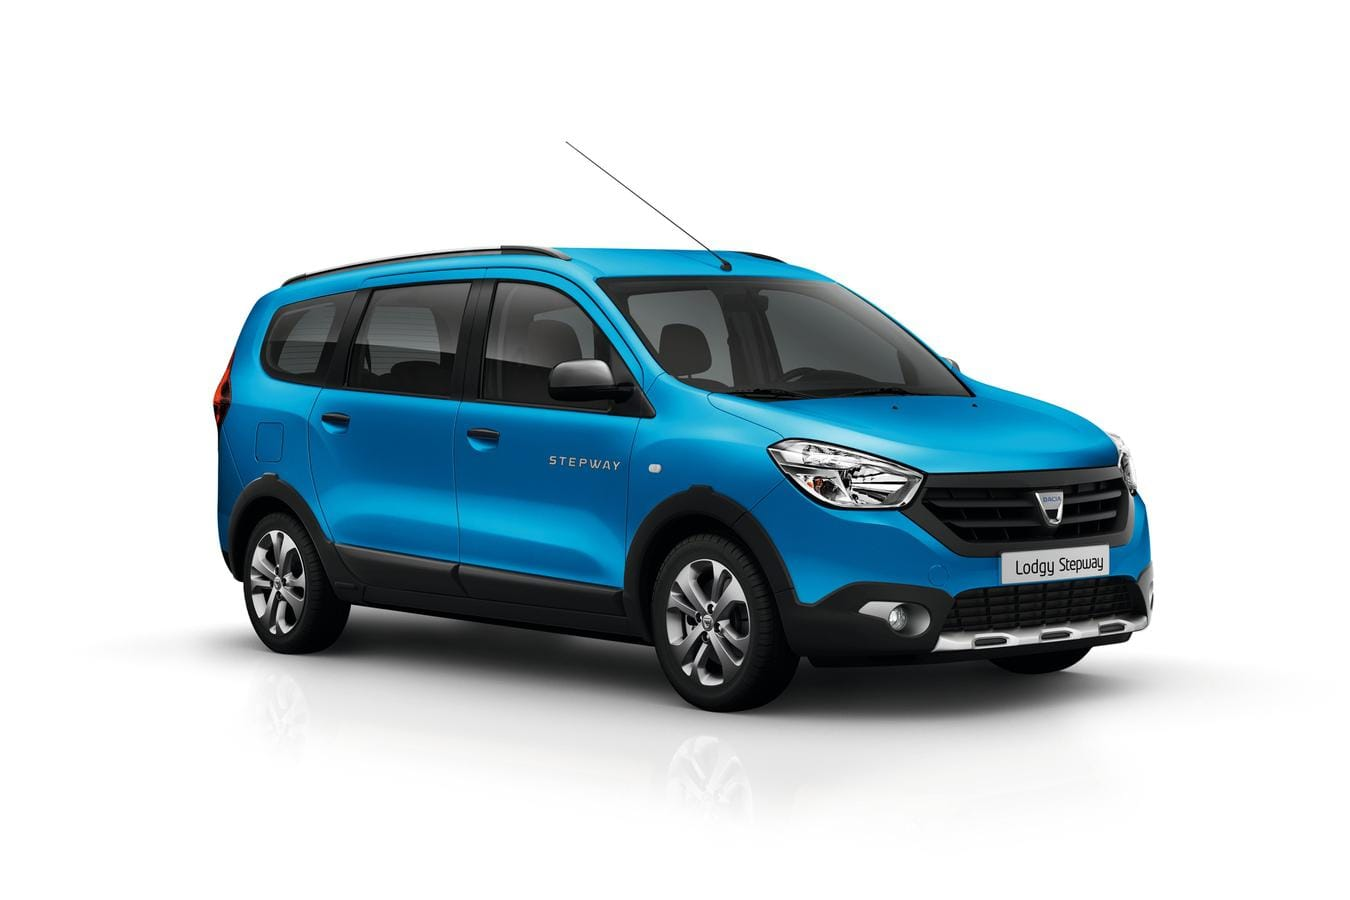 dacia sandero stepway automatique 6 images of dacia sandero stepway 0 9 tce automatic 90hp. Black Bedroom Furniture Sets. Home Design Ideas